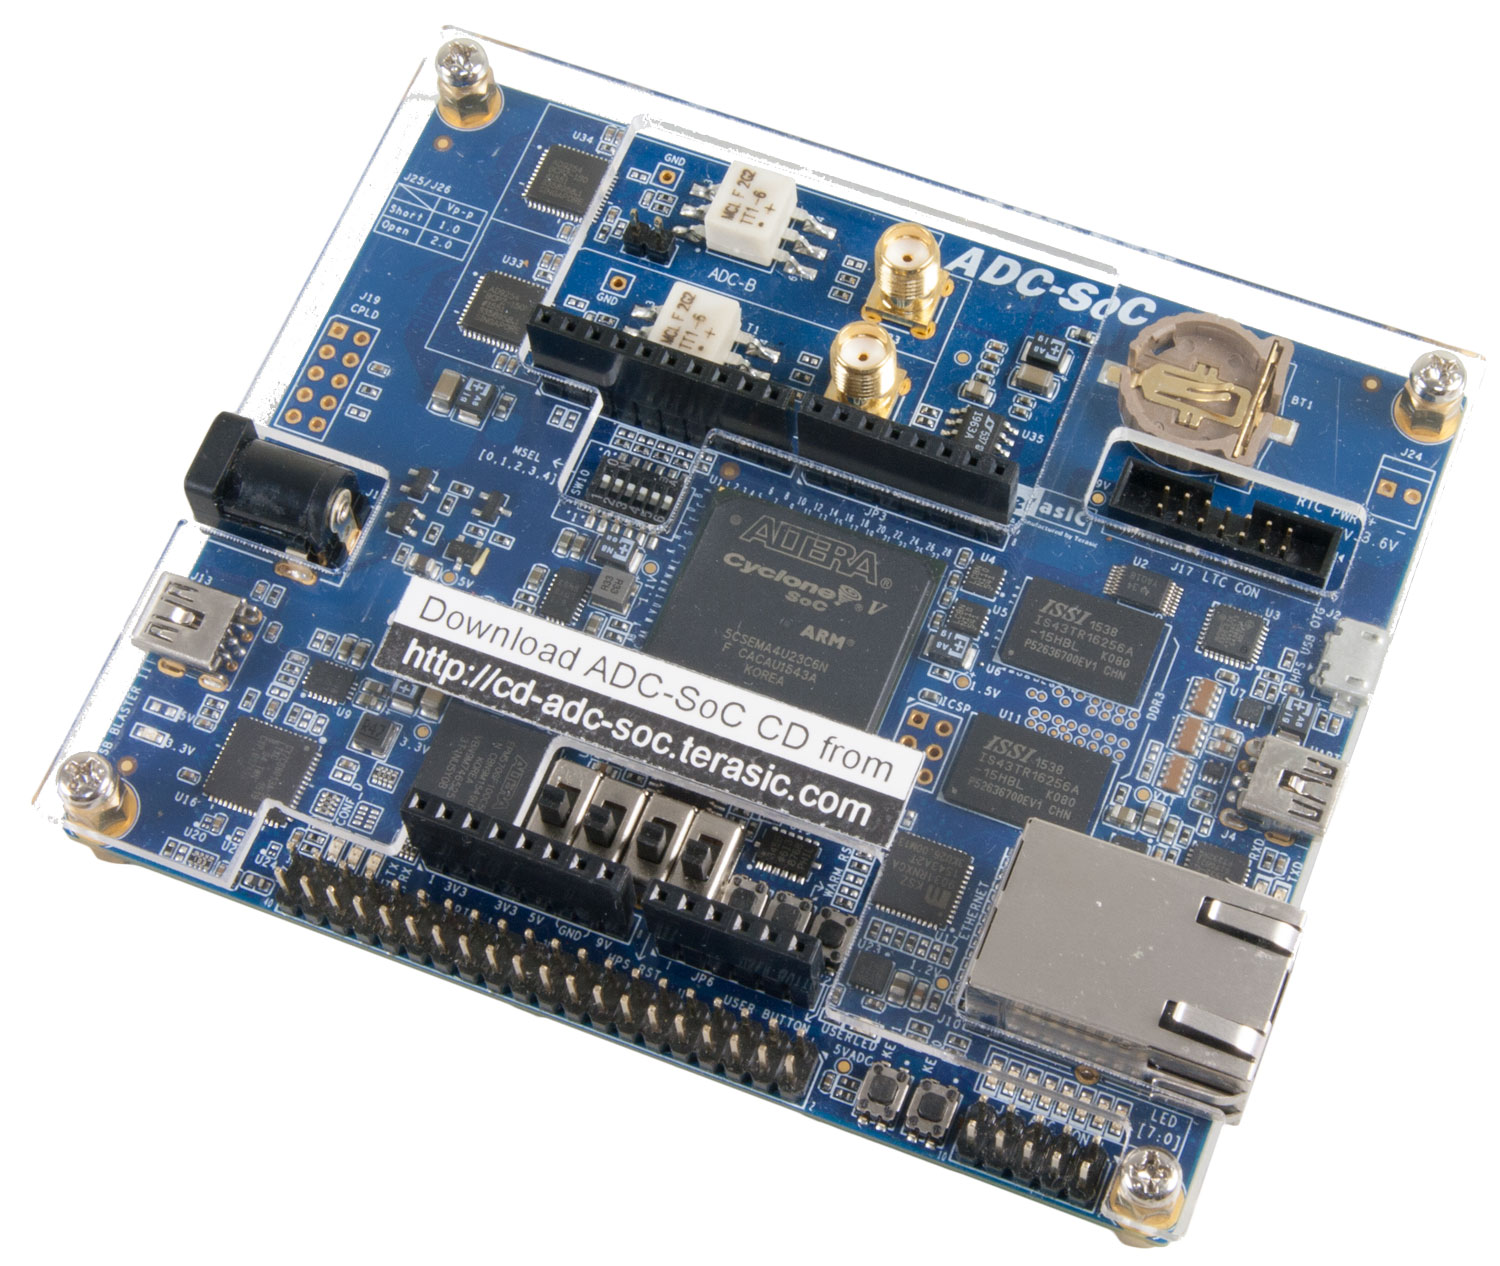 Terasic De Main Boards Cyclone Adc Soc Hardware Block Diagram Embedded Lab The Card Is Based On De0 Nano Board With A Built In High Speed Circuit Dcc Ad